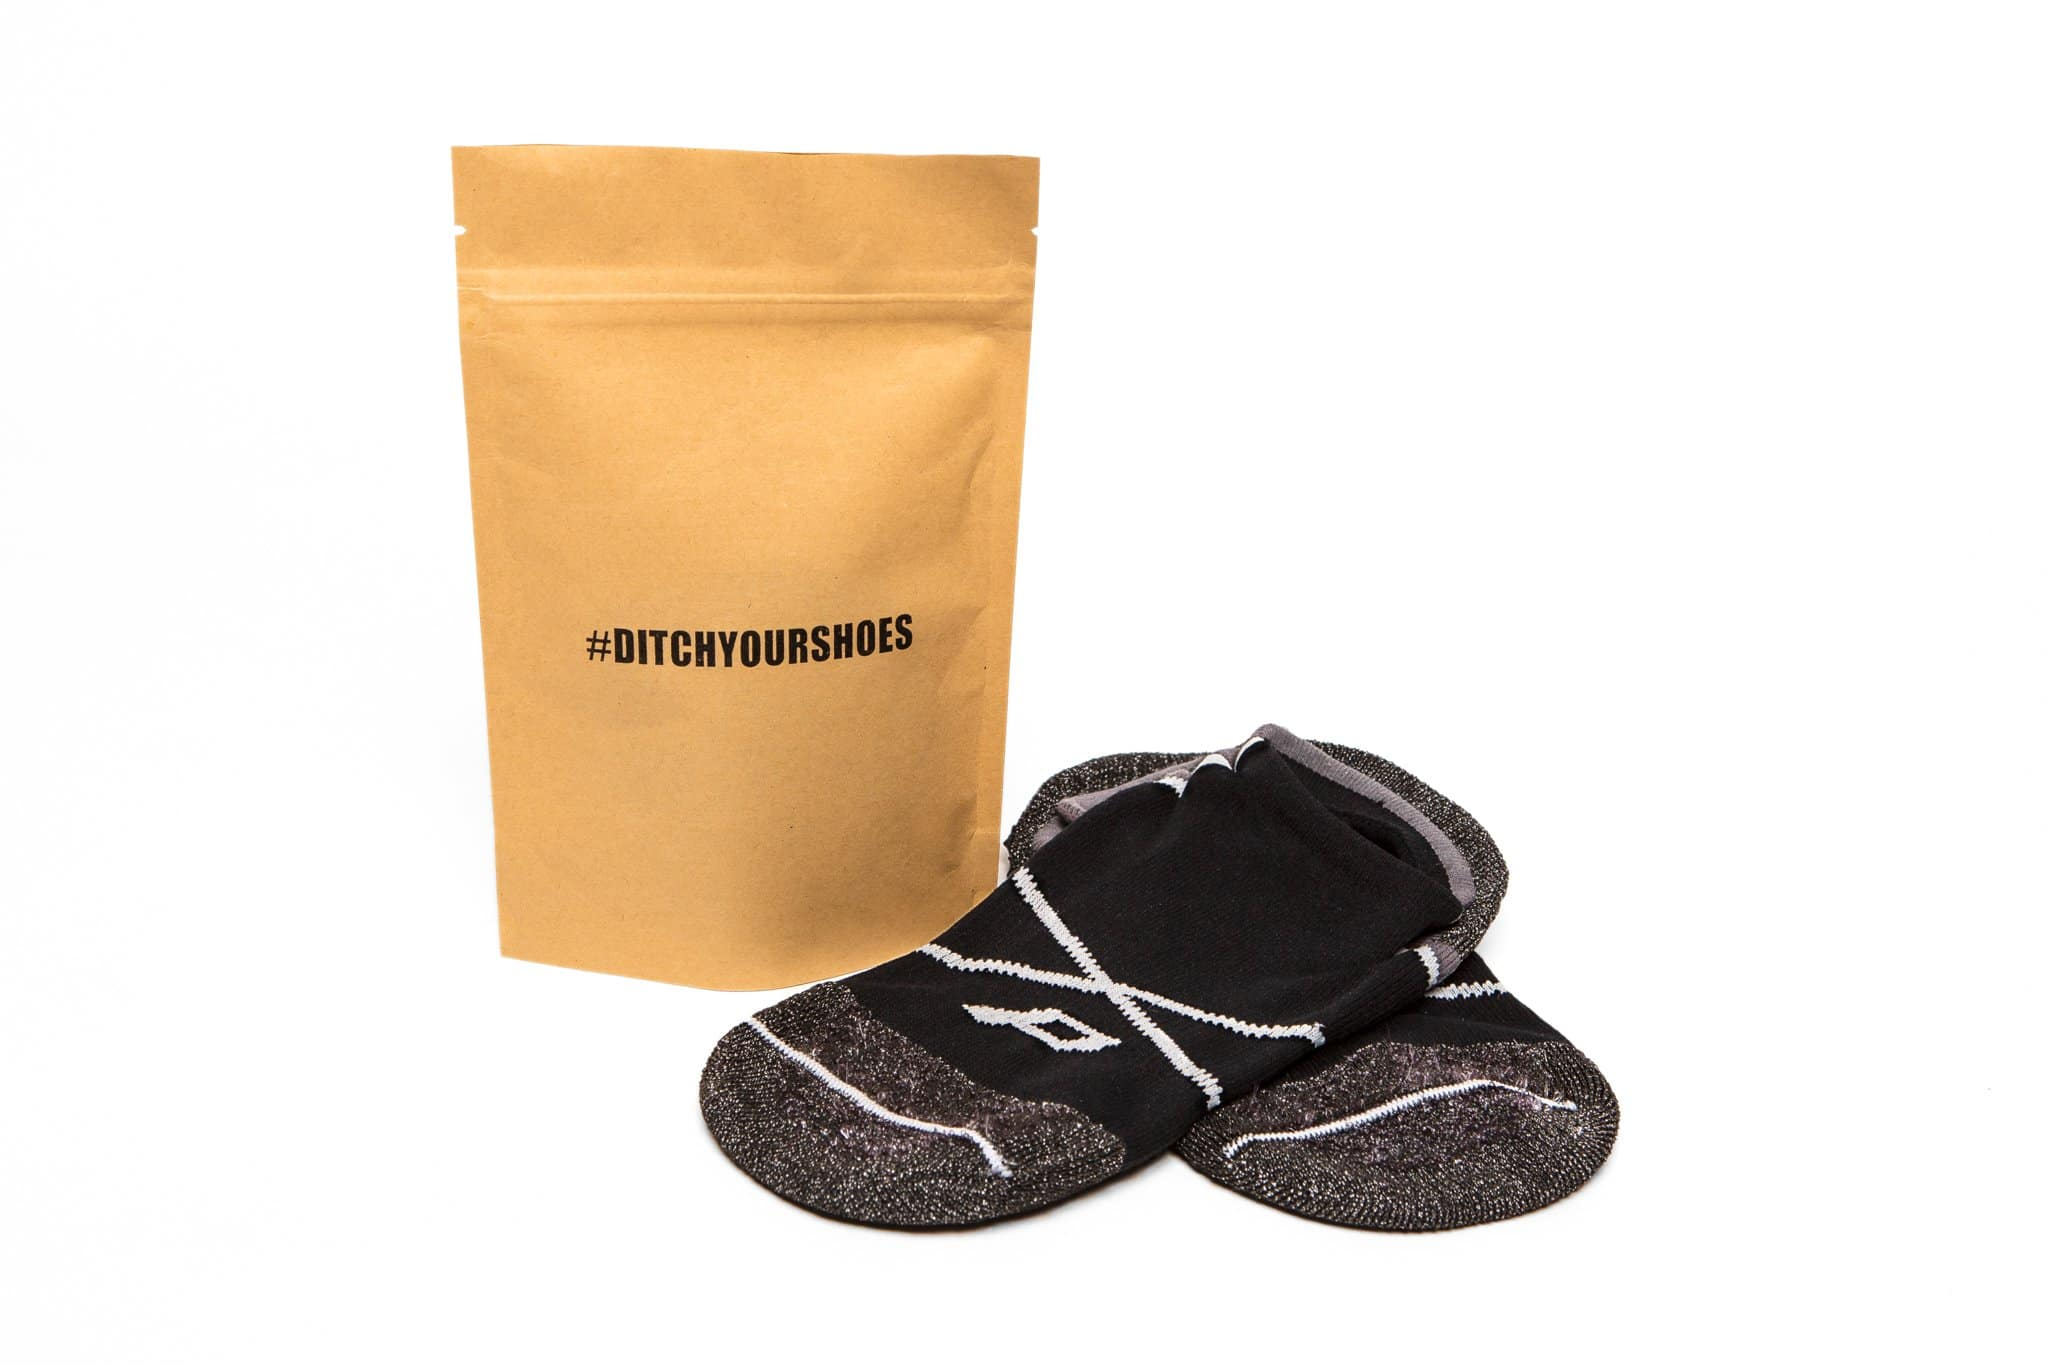 Pedestal Footwear socks sitting next to a manilla bag that says #DITCHYOURSHOES